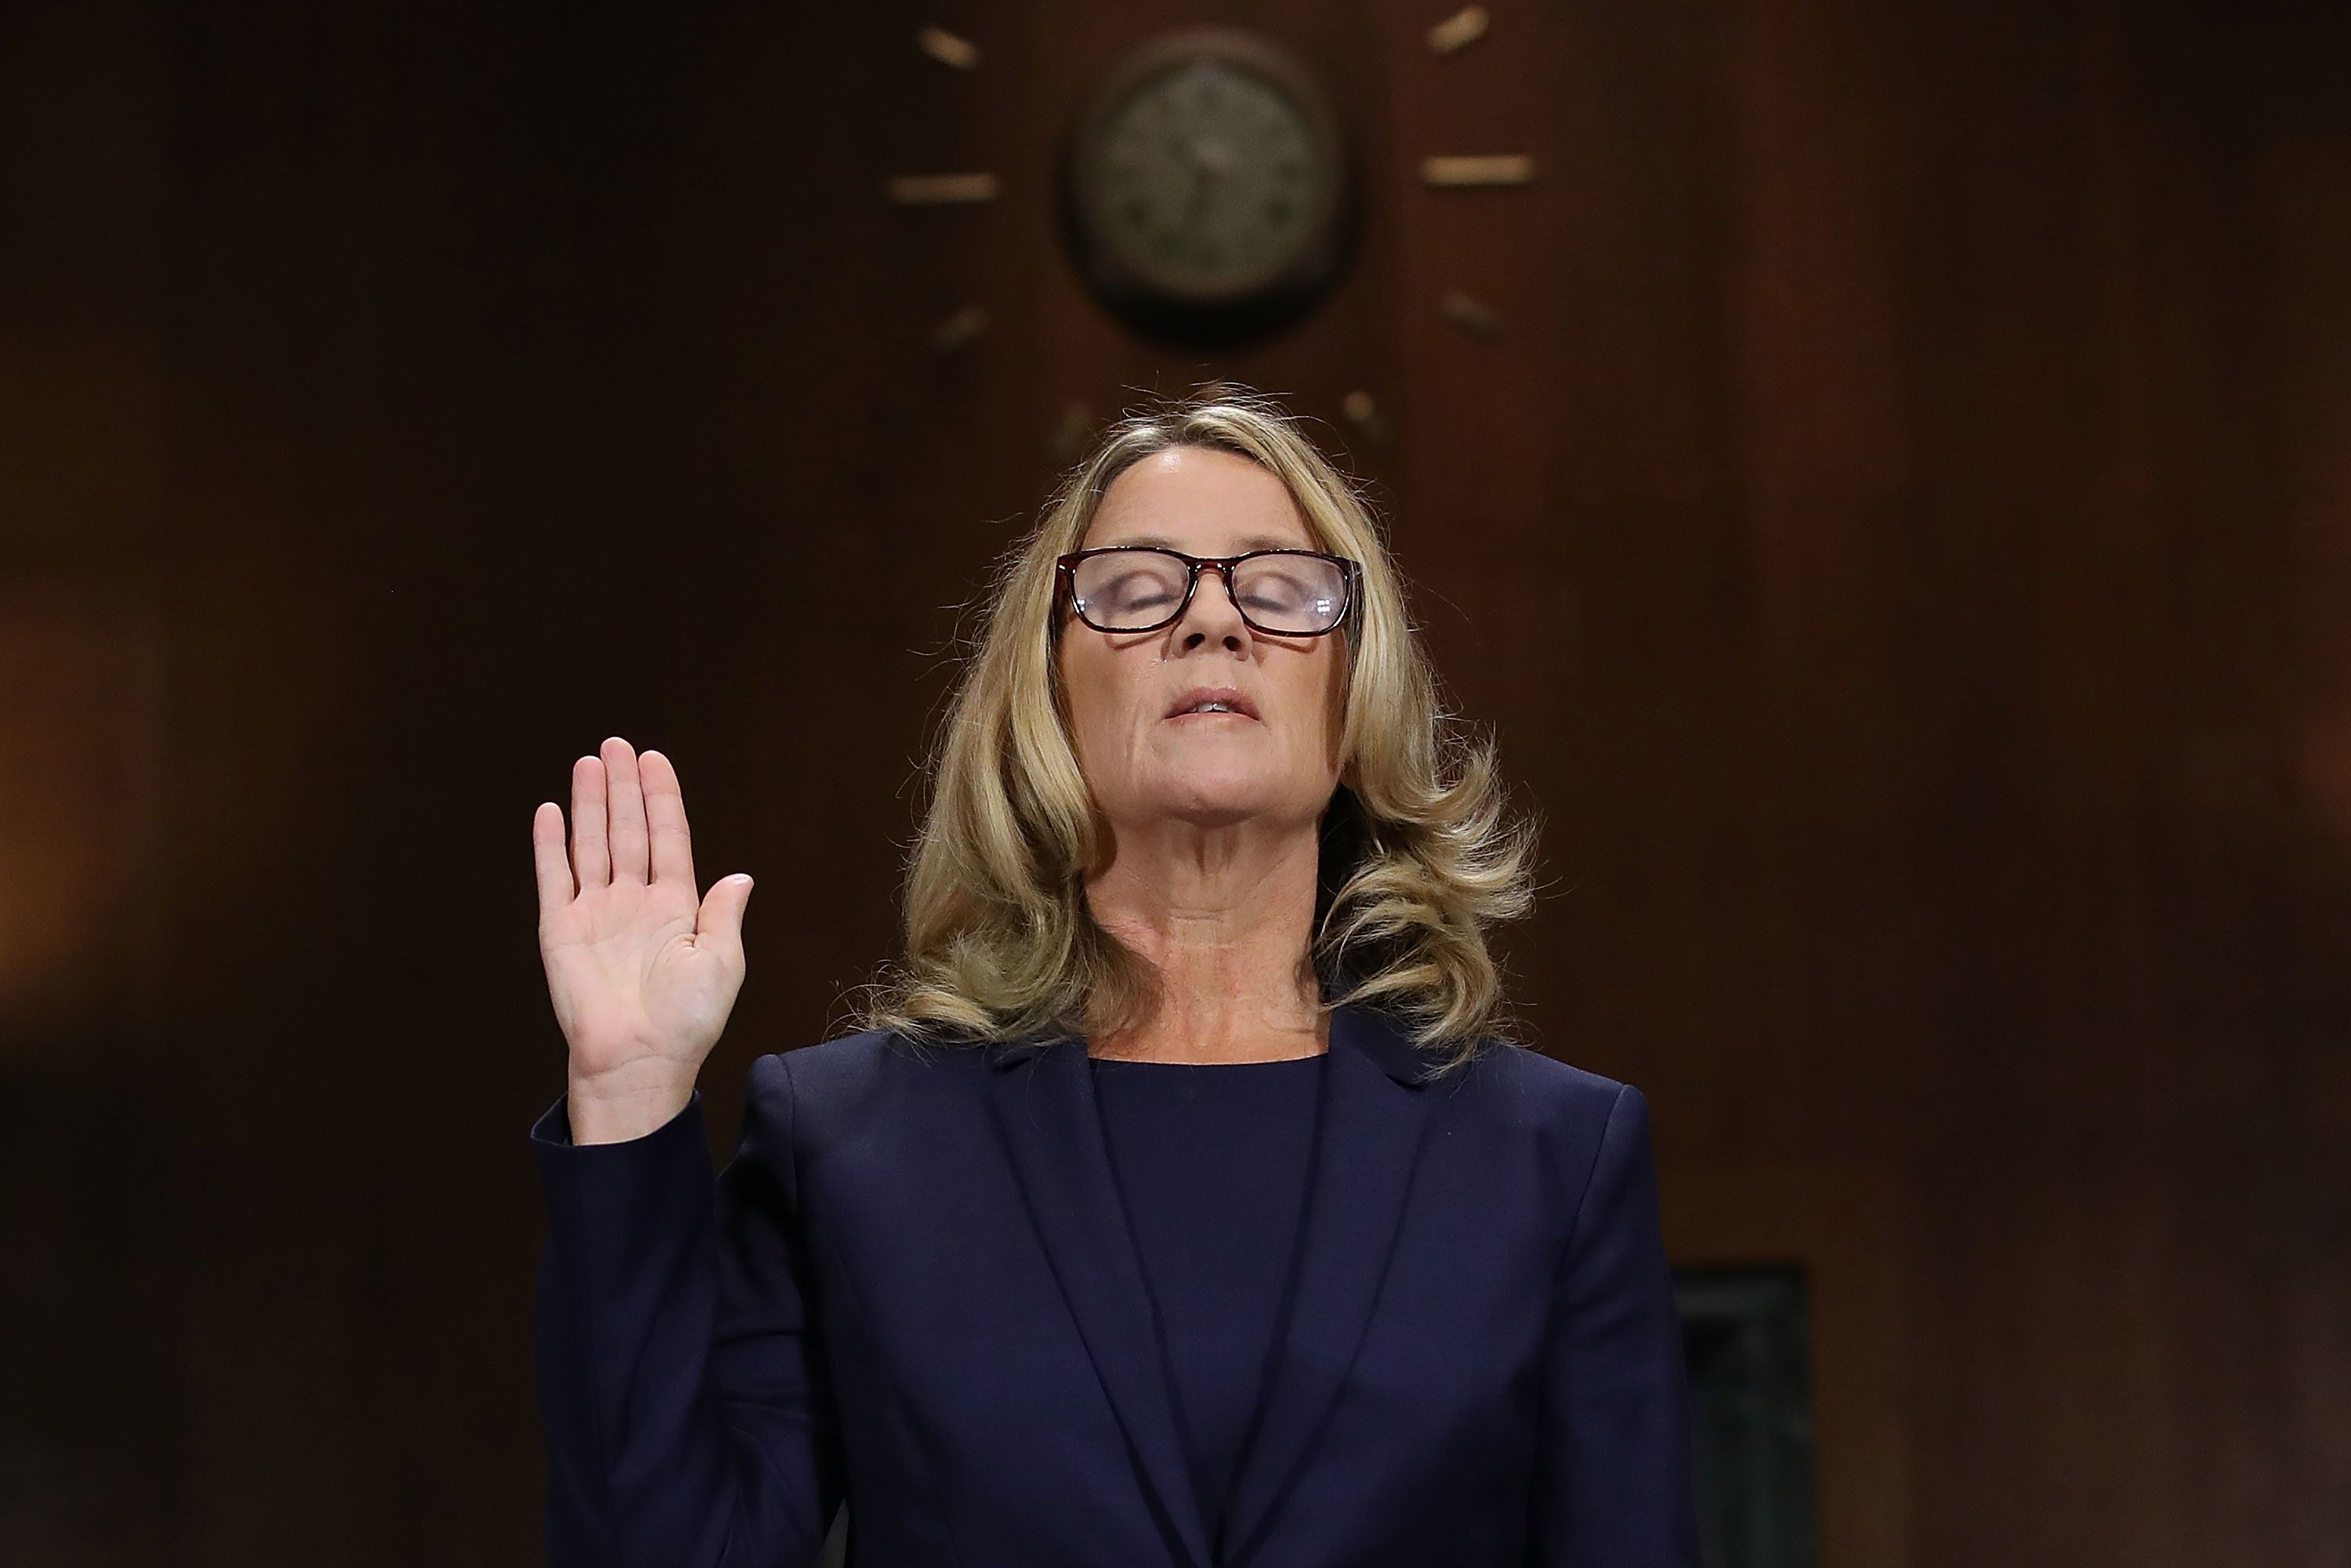 WASHINGTON, DC - SEPTEMBER 27:  Christine Blasey Ford is sworn in before testifying the Senate Judiciary Committee in the Dirksen Senate Office Building on Capitol Hill September 27, 2018 in Washington, DC. A professor at Palo Alto University and a research psychologist at the Stanford University School of Medicine, Ford has accused Supreme Court nominee Judge Brett Kavanaugh of sexually assaulting her during a party in 1982 when they were high school students in suburban Maryland. In prepared remarks, Ford said, ÒI donÕt have all the answers, and I donÕt remember as much as I would like to. But the details about that night that bring me here today are ones I will never forget. They have been seared into my memory and have haunted me episodically as an adult.Ó  (Photo by Win McNamee/Getty Images)